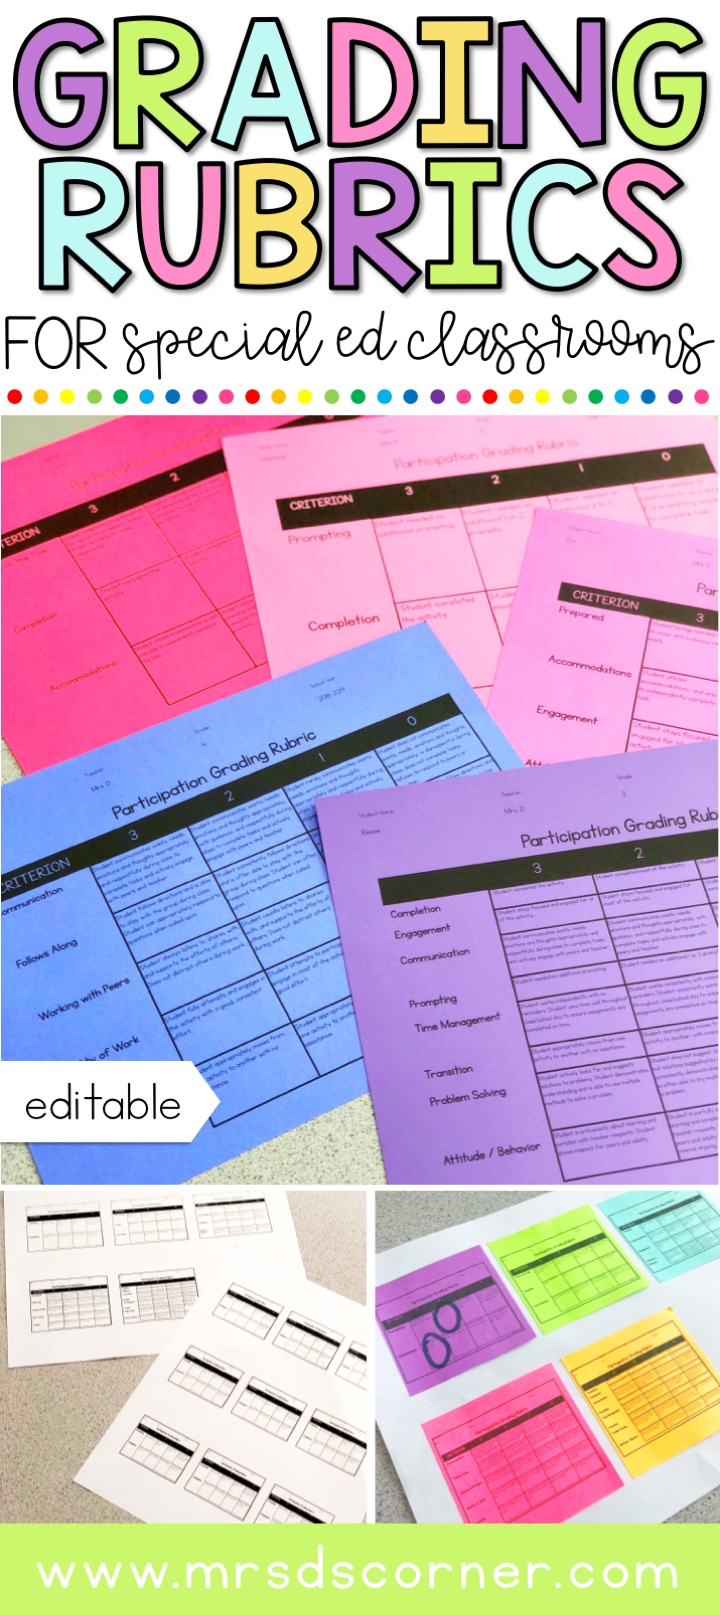 Grading Rubrics for special needs students. grading rubrics for students with disabilities. grading in special education. bit.ly/MDCrubrics